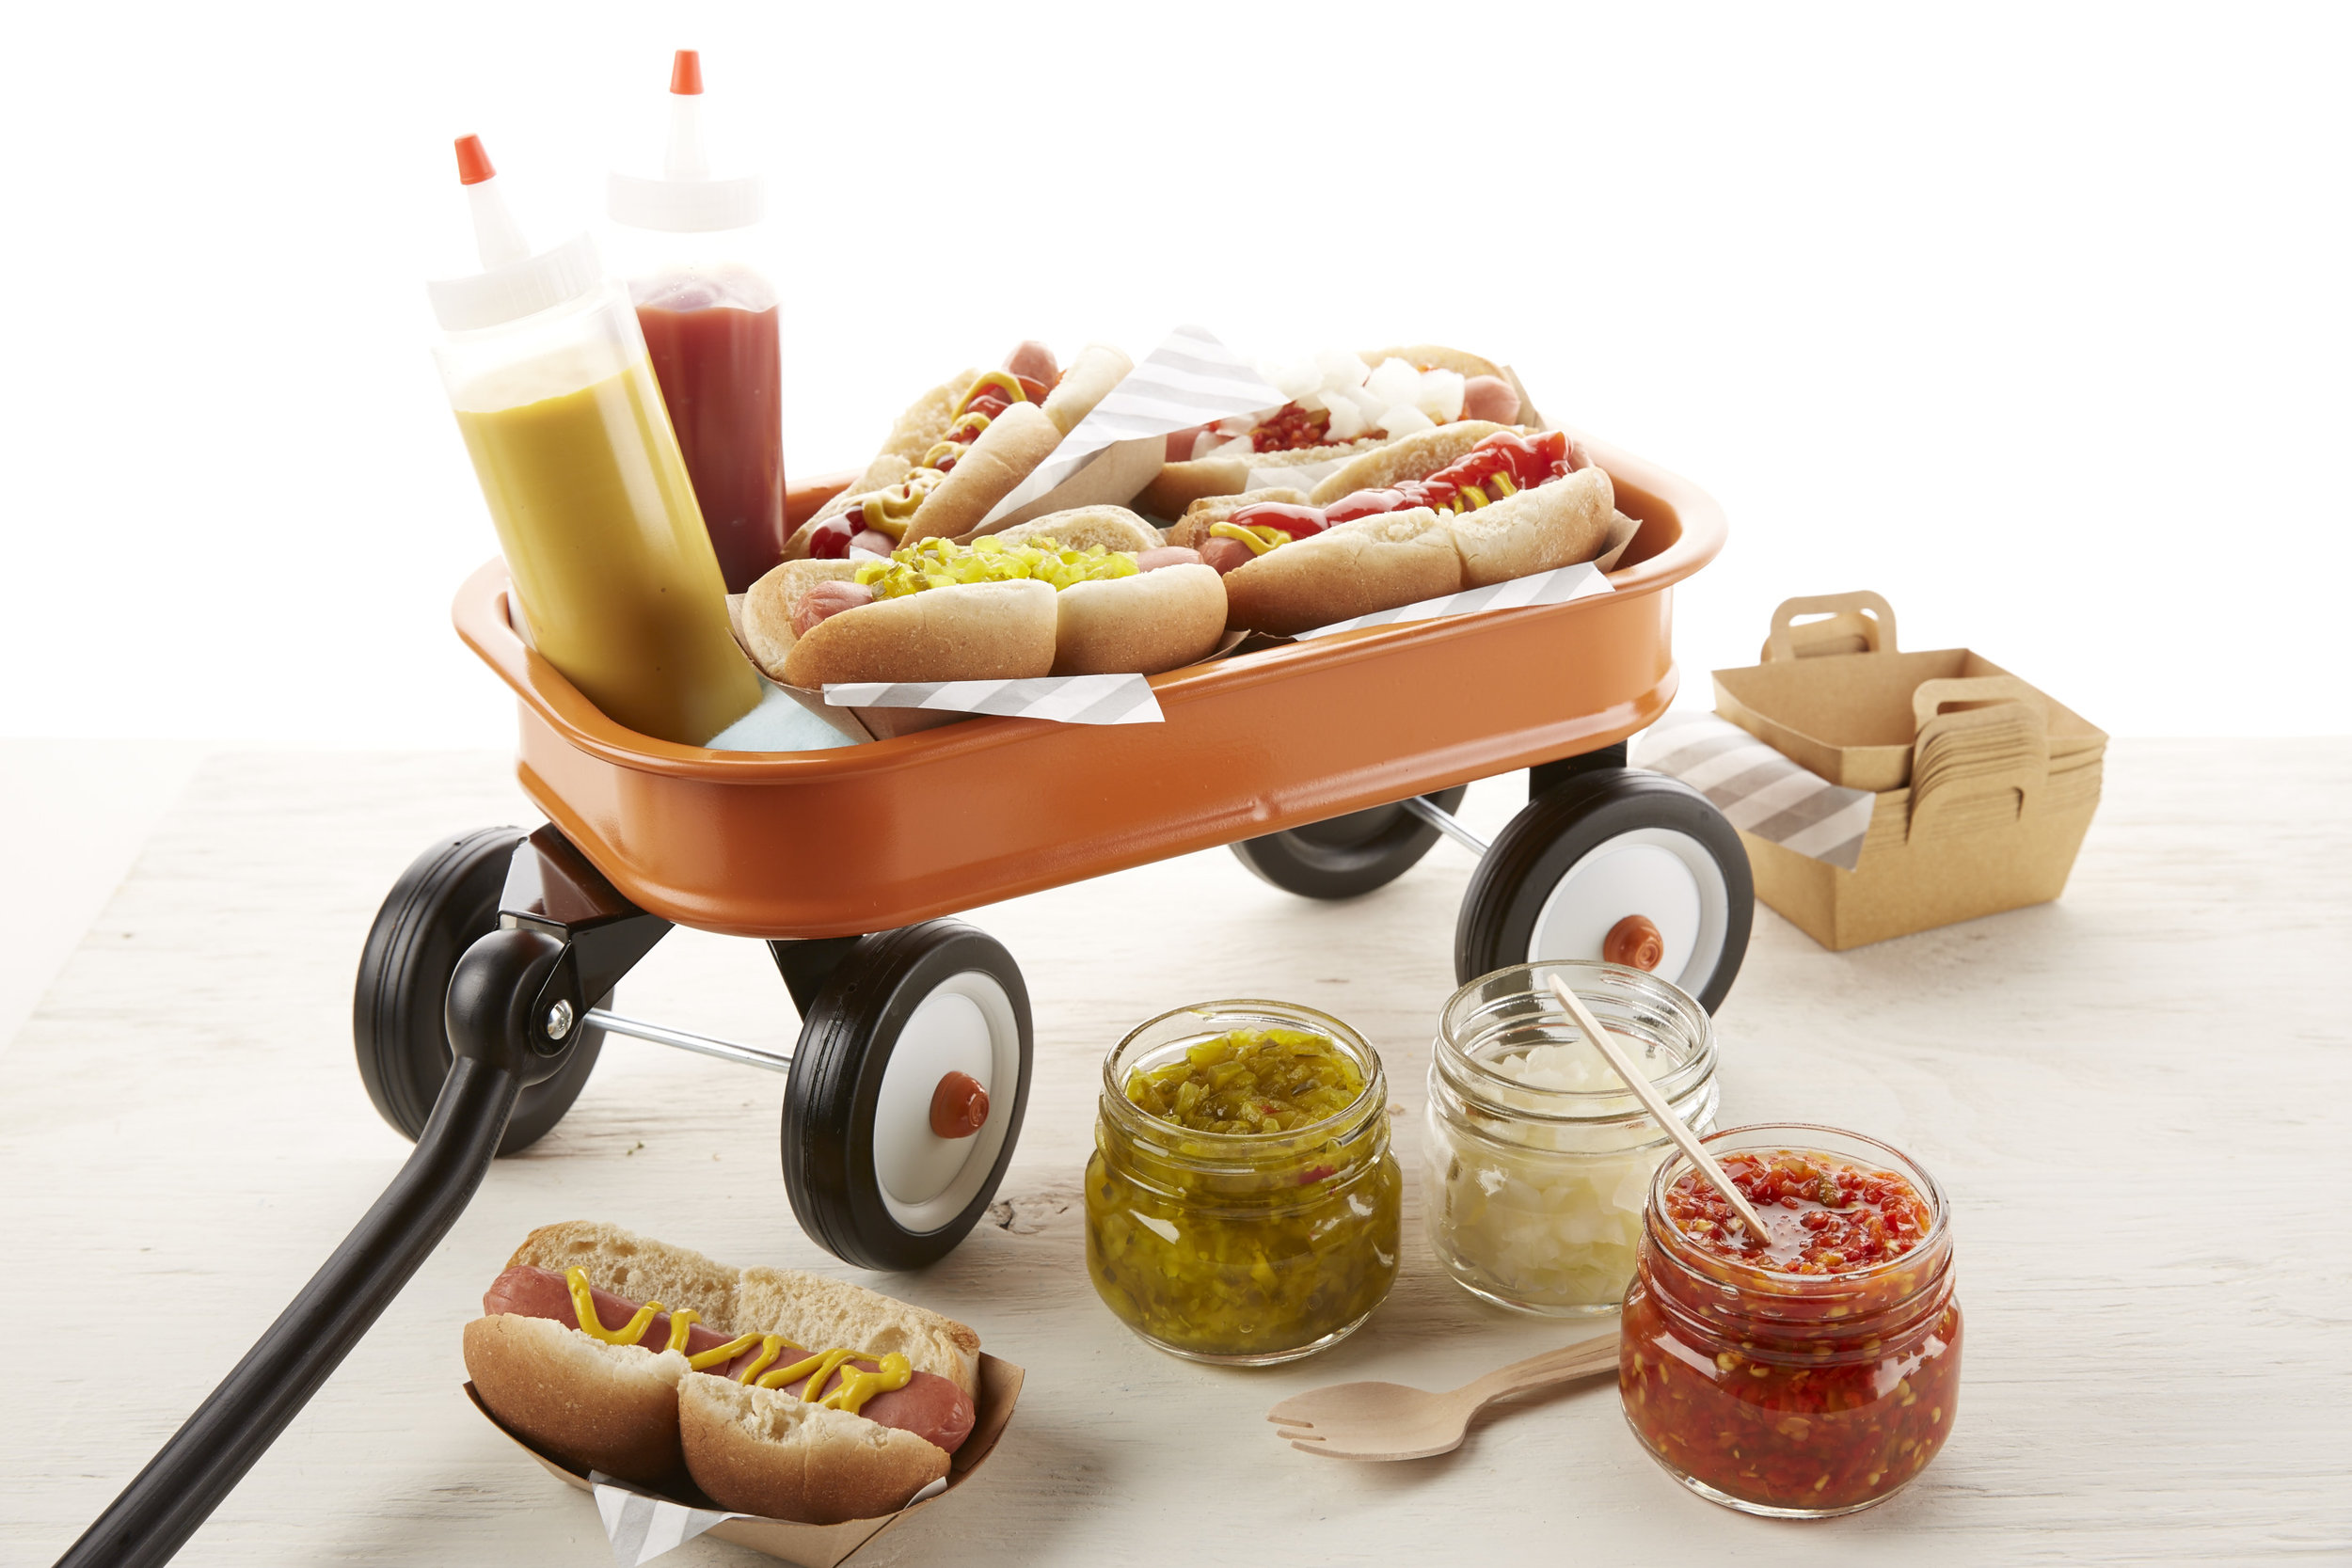 Hotdog Picnic for OshKosh B'Gosh |   Steve Pomberg